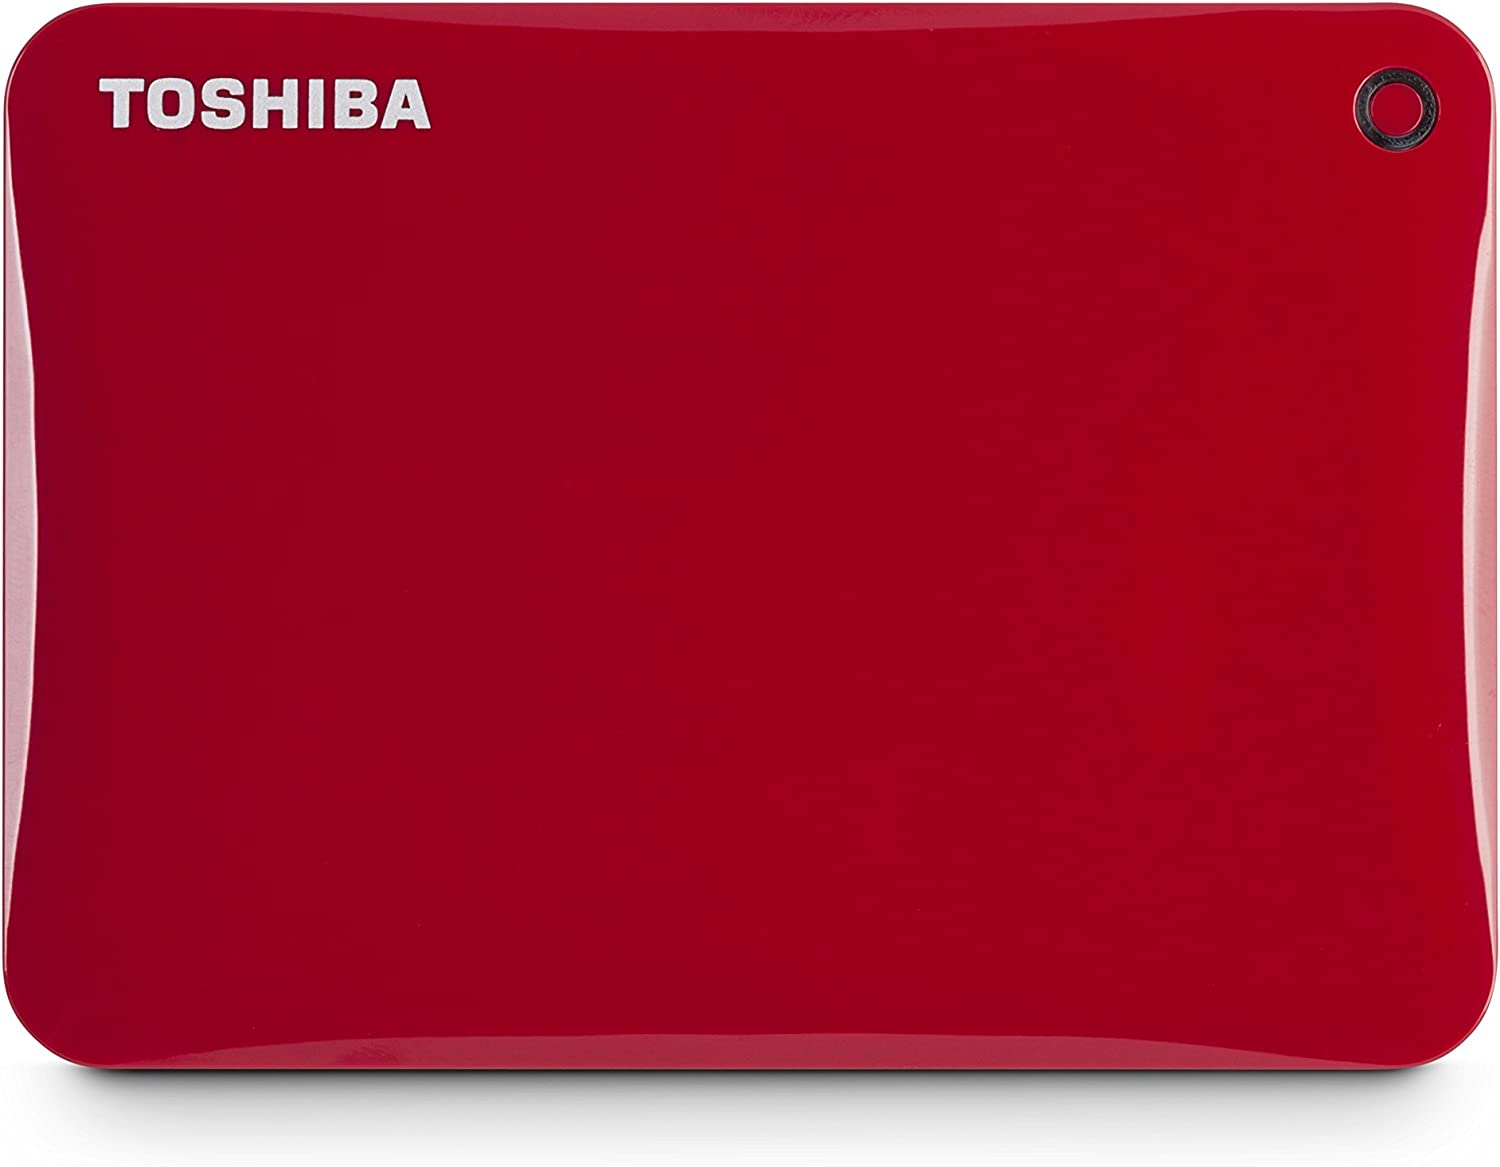 Toshiba Canvio Connect II 1TB Portable Hard Drive, Red (HDTC810XR3A1)